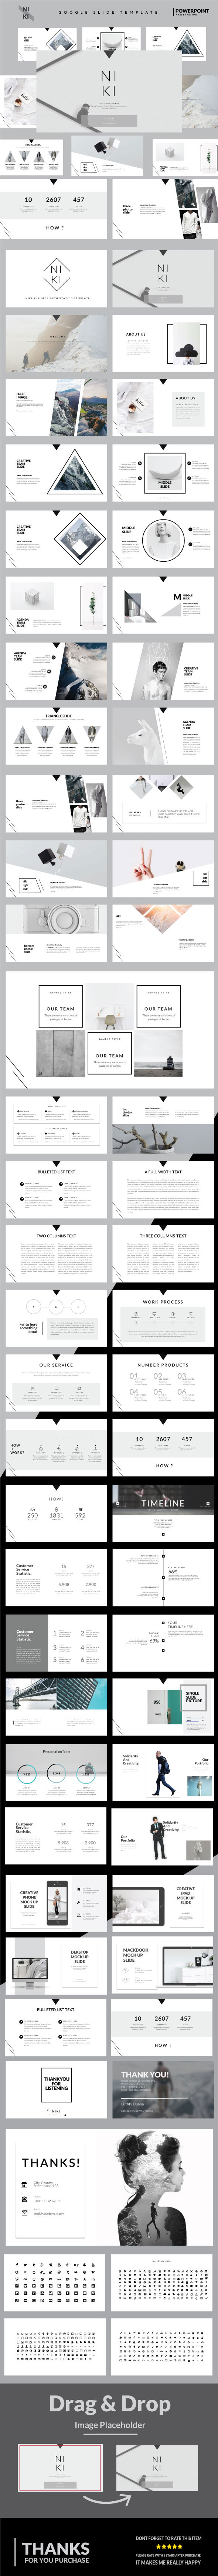 Niki - Google Slide Template - Google Slides Presentation Templates